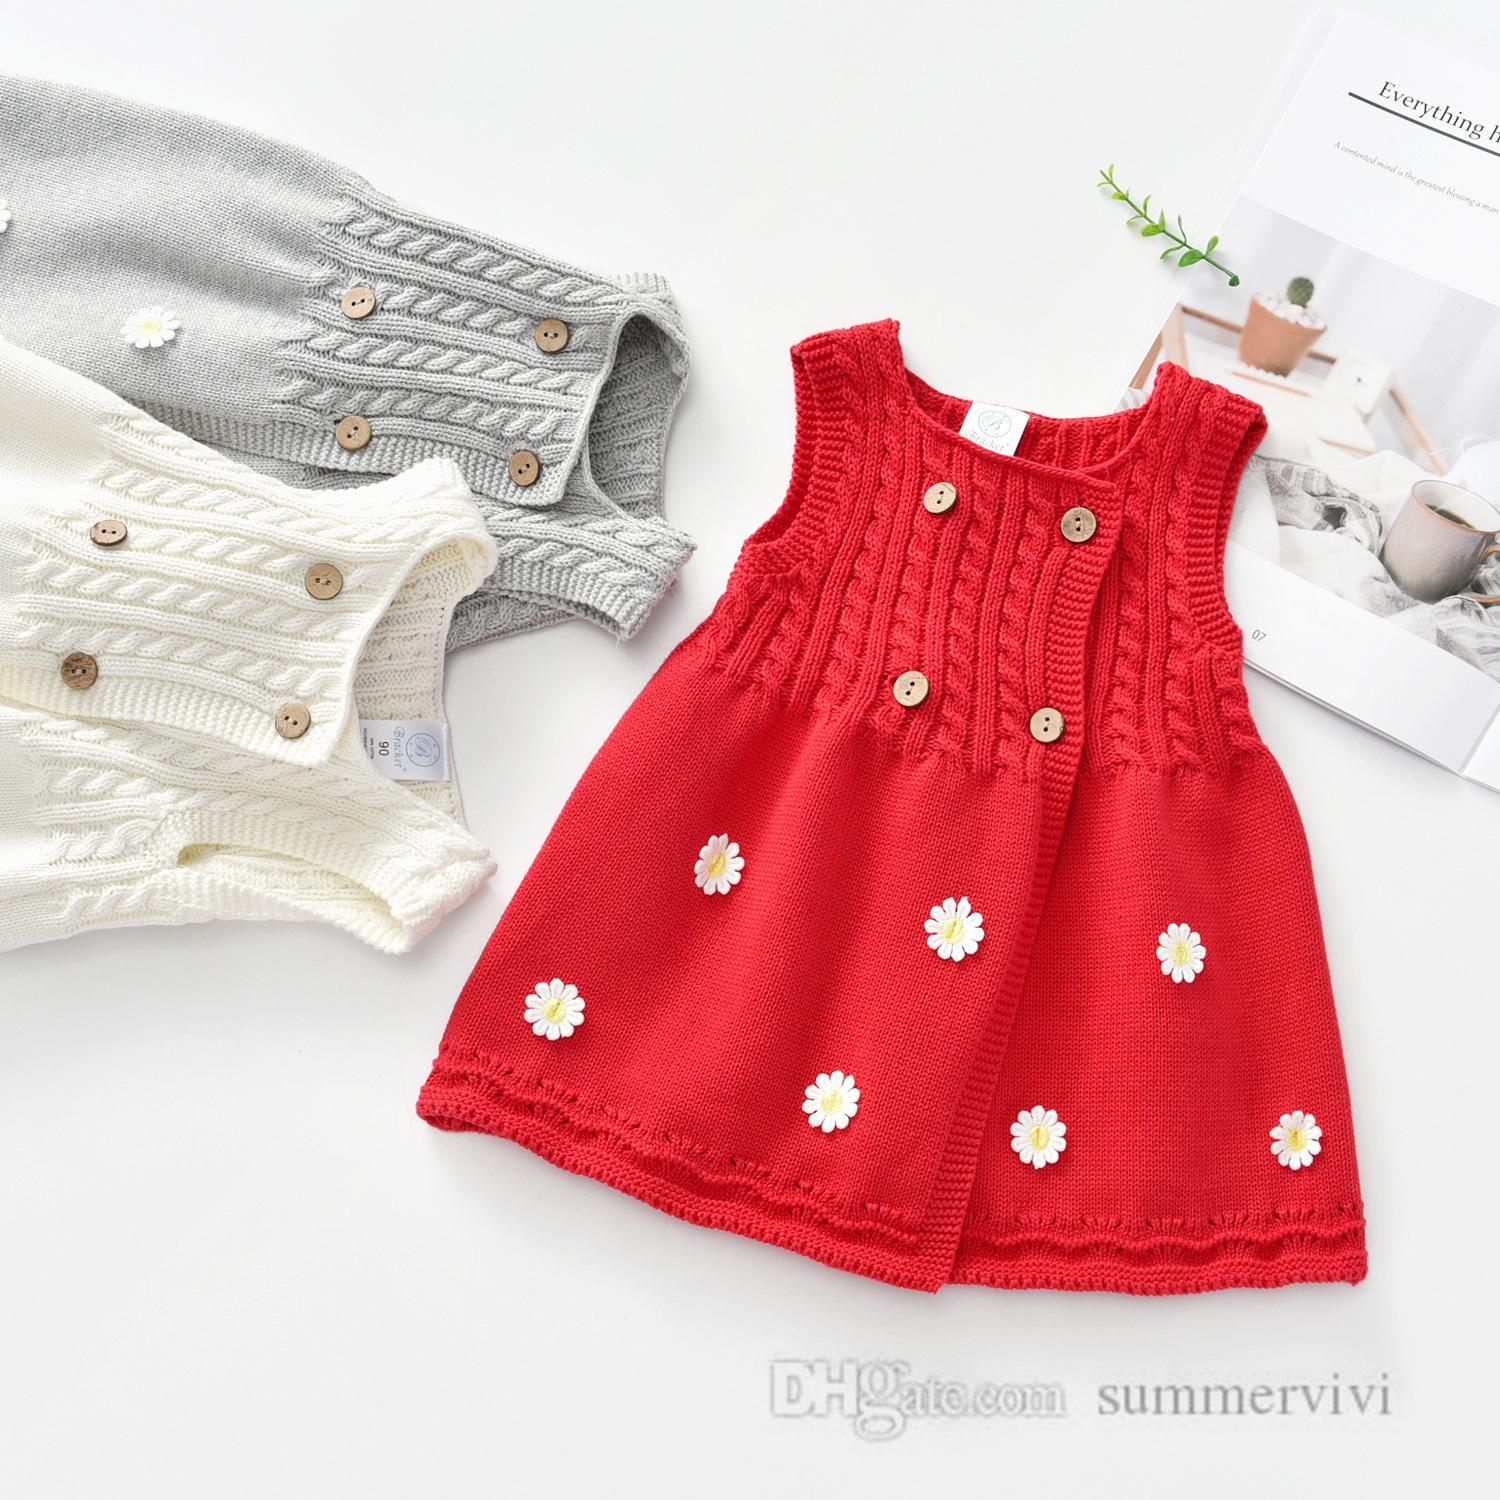 INS girls stereo flowers applique vest dress kids twist knitted sweater princess dresses christmas children party clothing Q2360